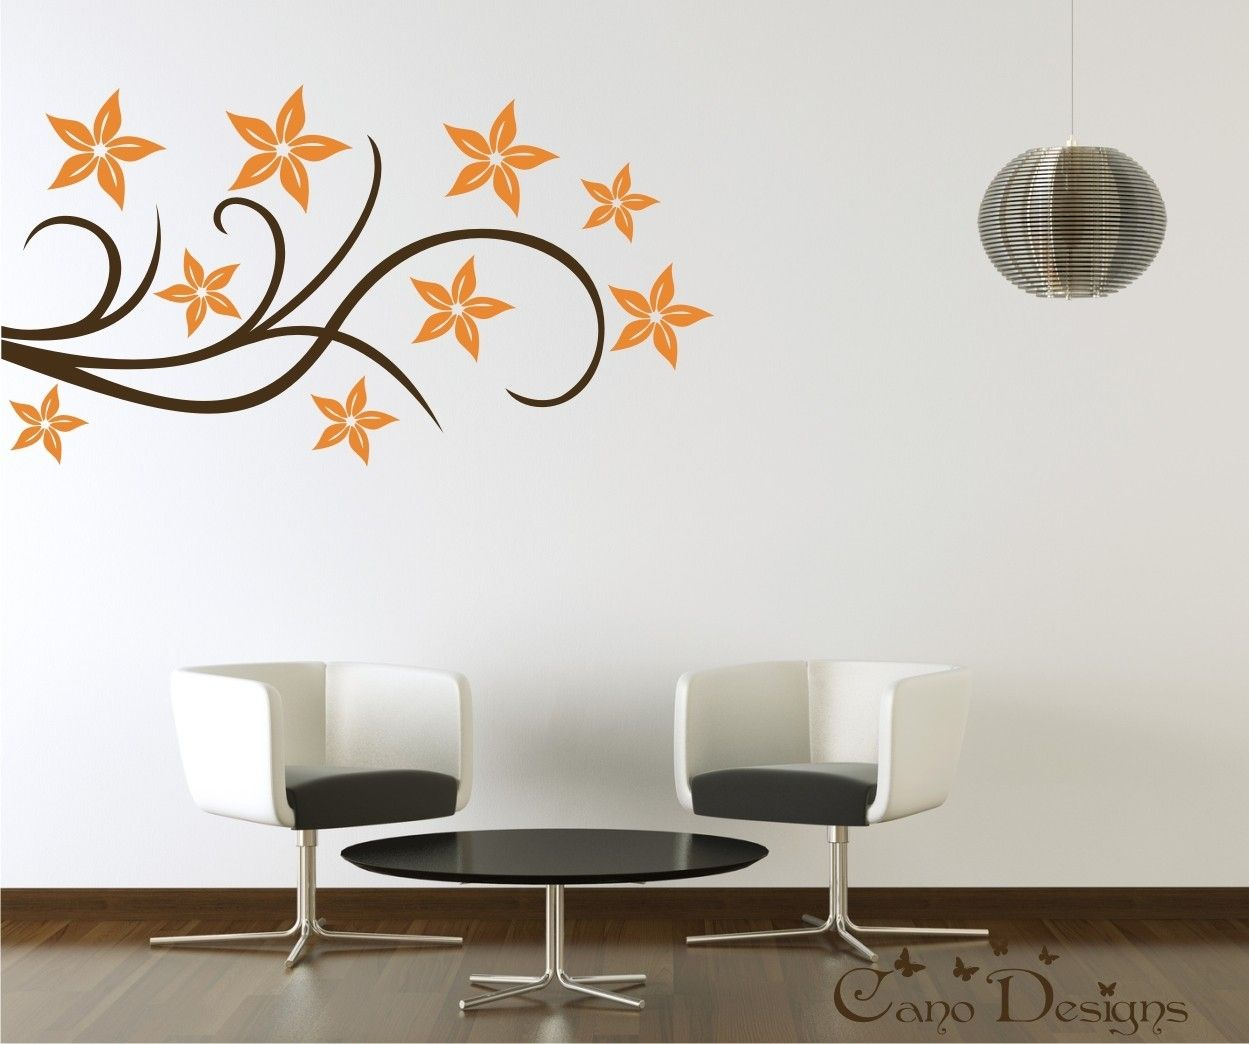 Wall Stickers Design Images | http://ultimaterpmod.us/ | Pinterest ... for Wall Sticker Design Sendiri  66pct